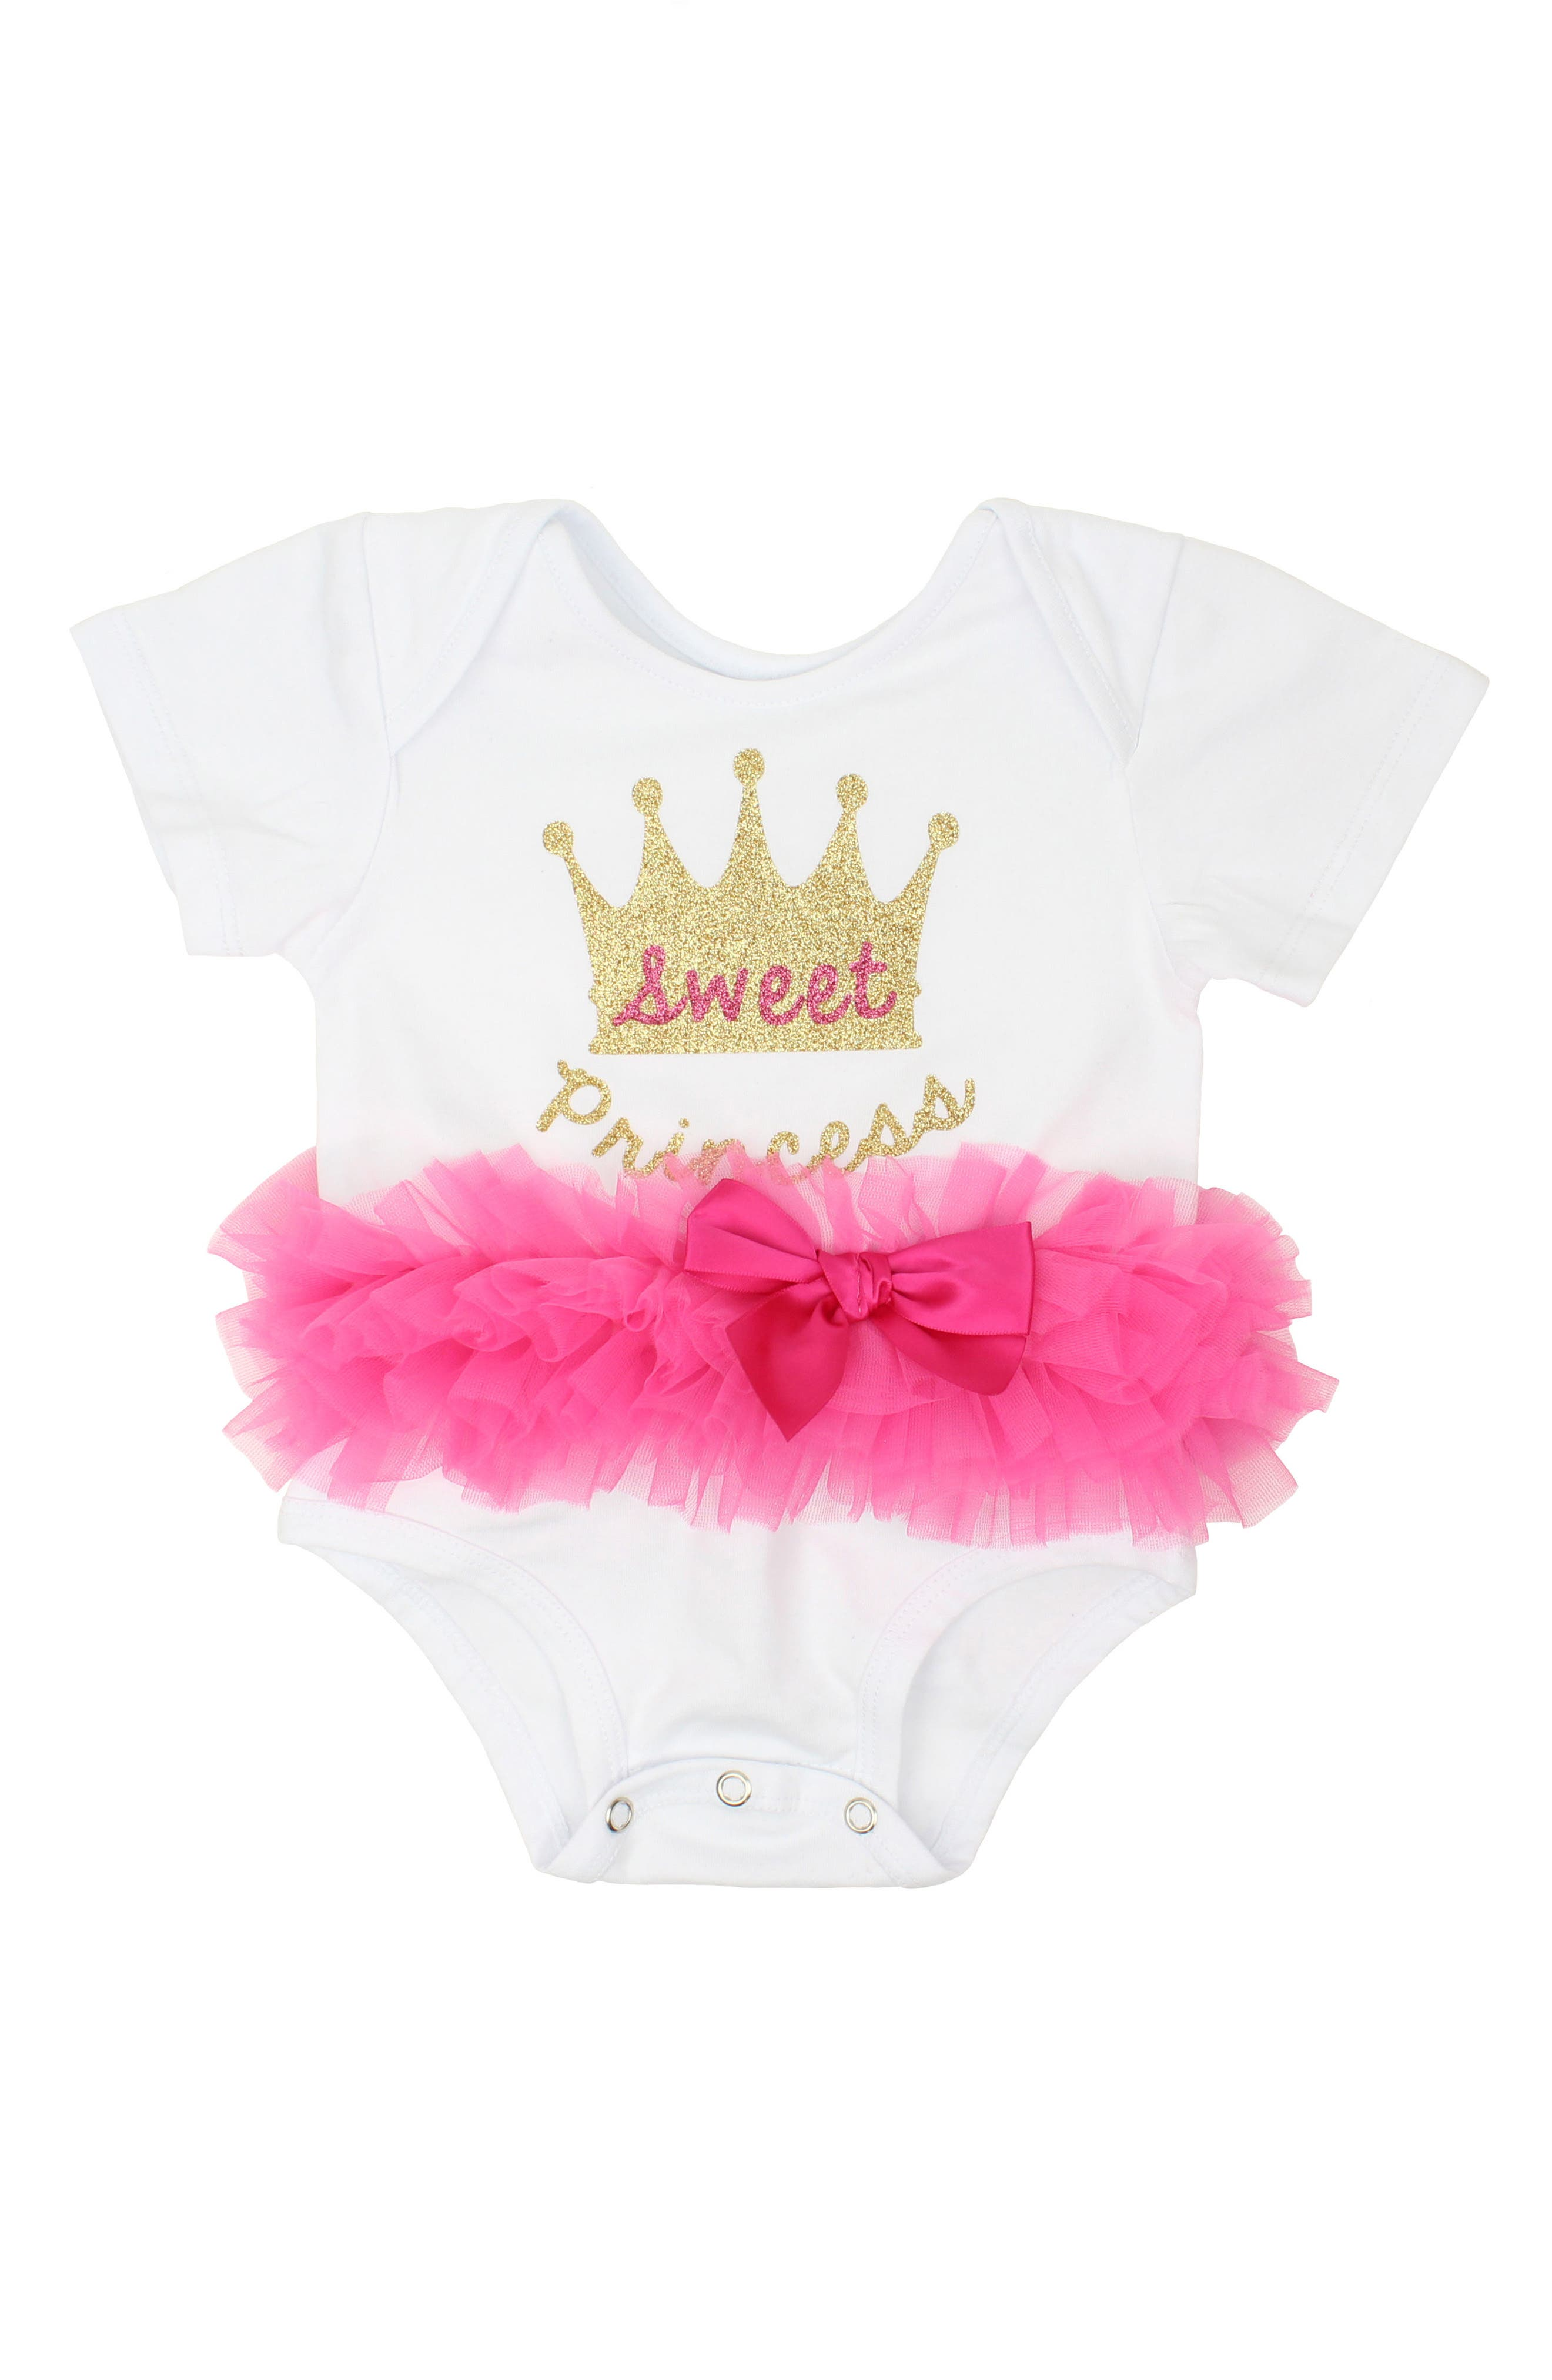 Sweet Princess Tutu Bodysuit,                         Main,                         color, HOT PINK